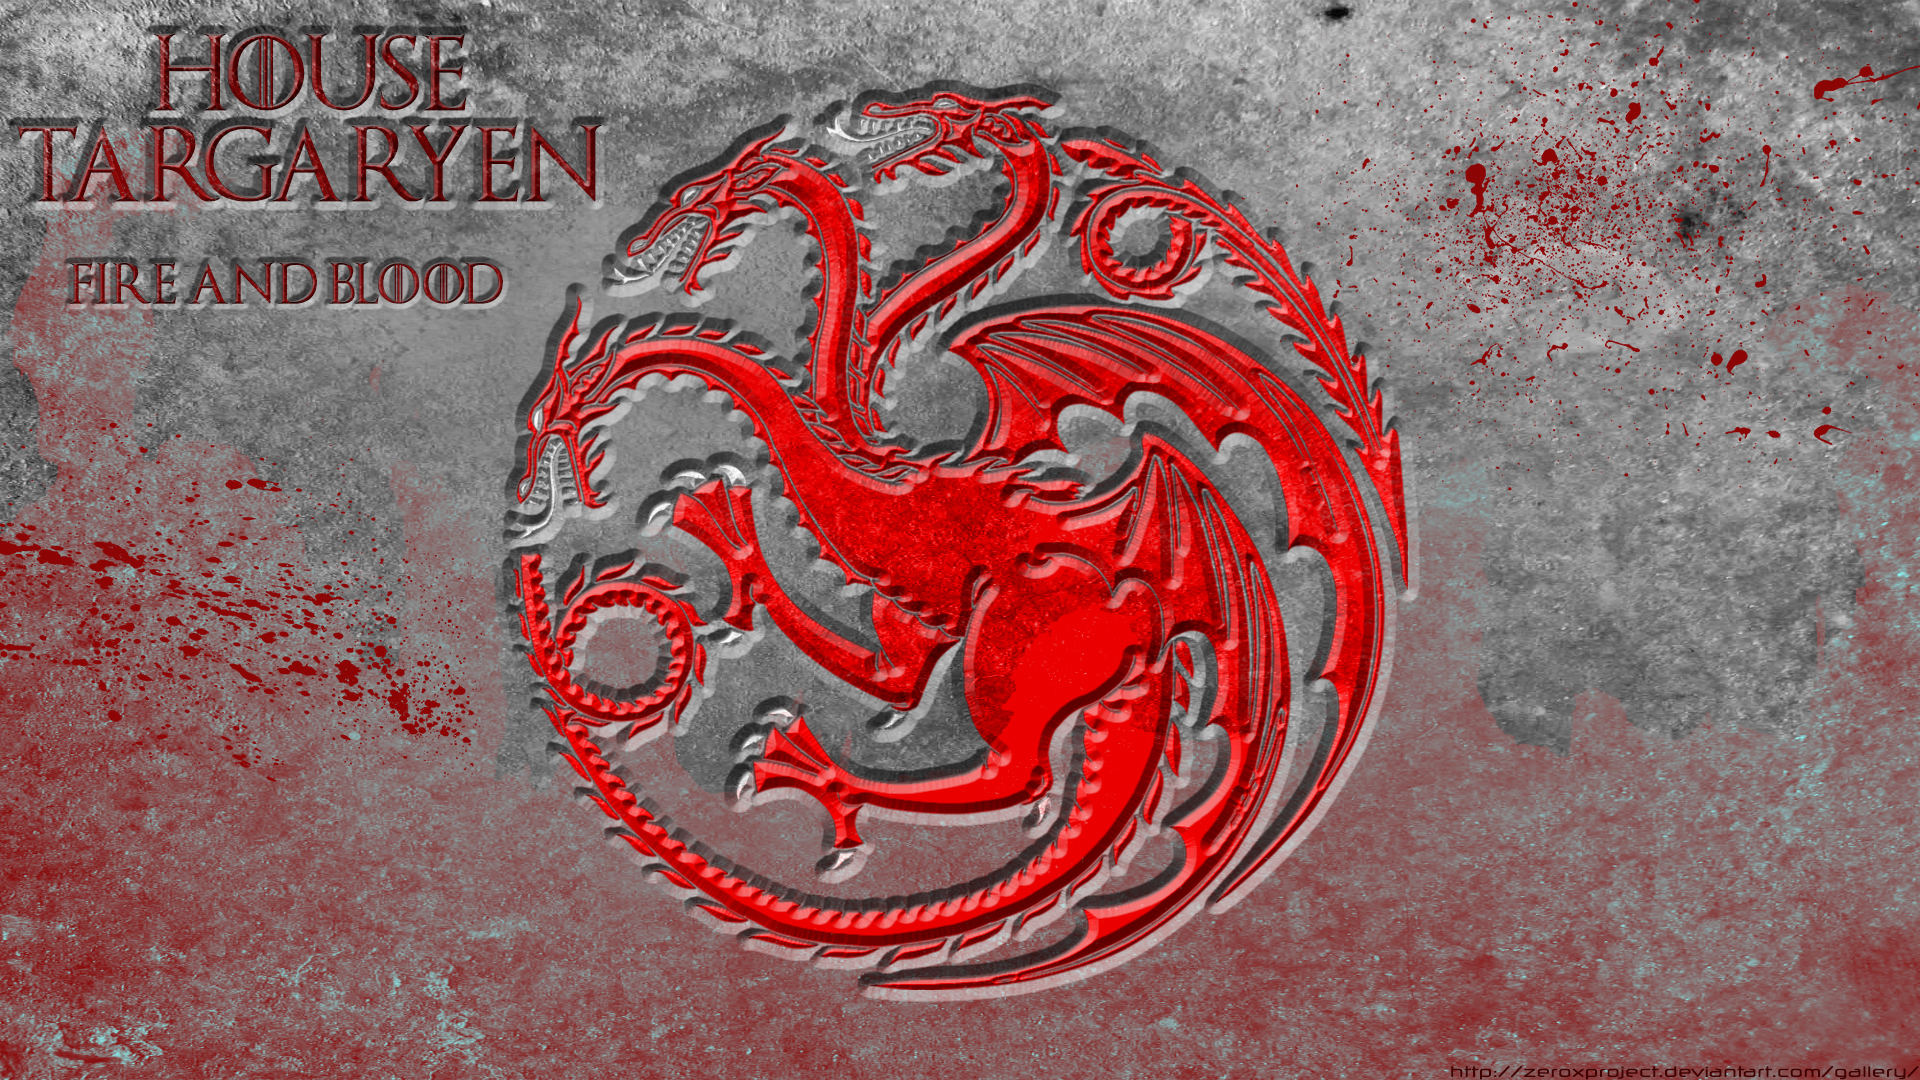 House Targaryen Game Of Thrones 1920x1080 Hd By Zeroxproject